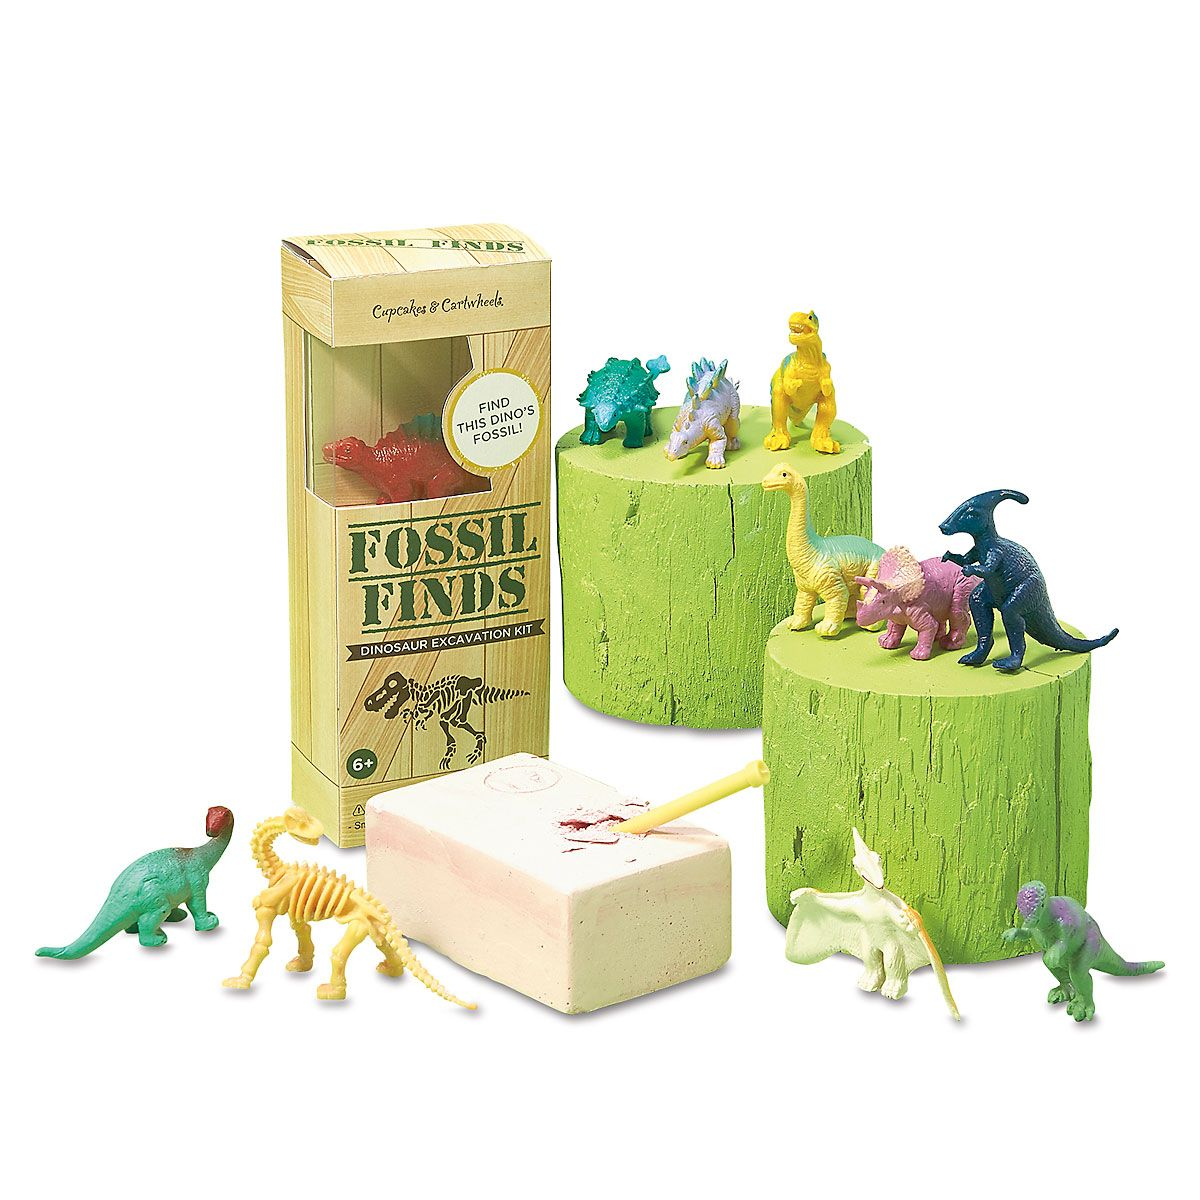 Fossil Finds - Dino Excavation Set